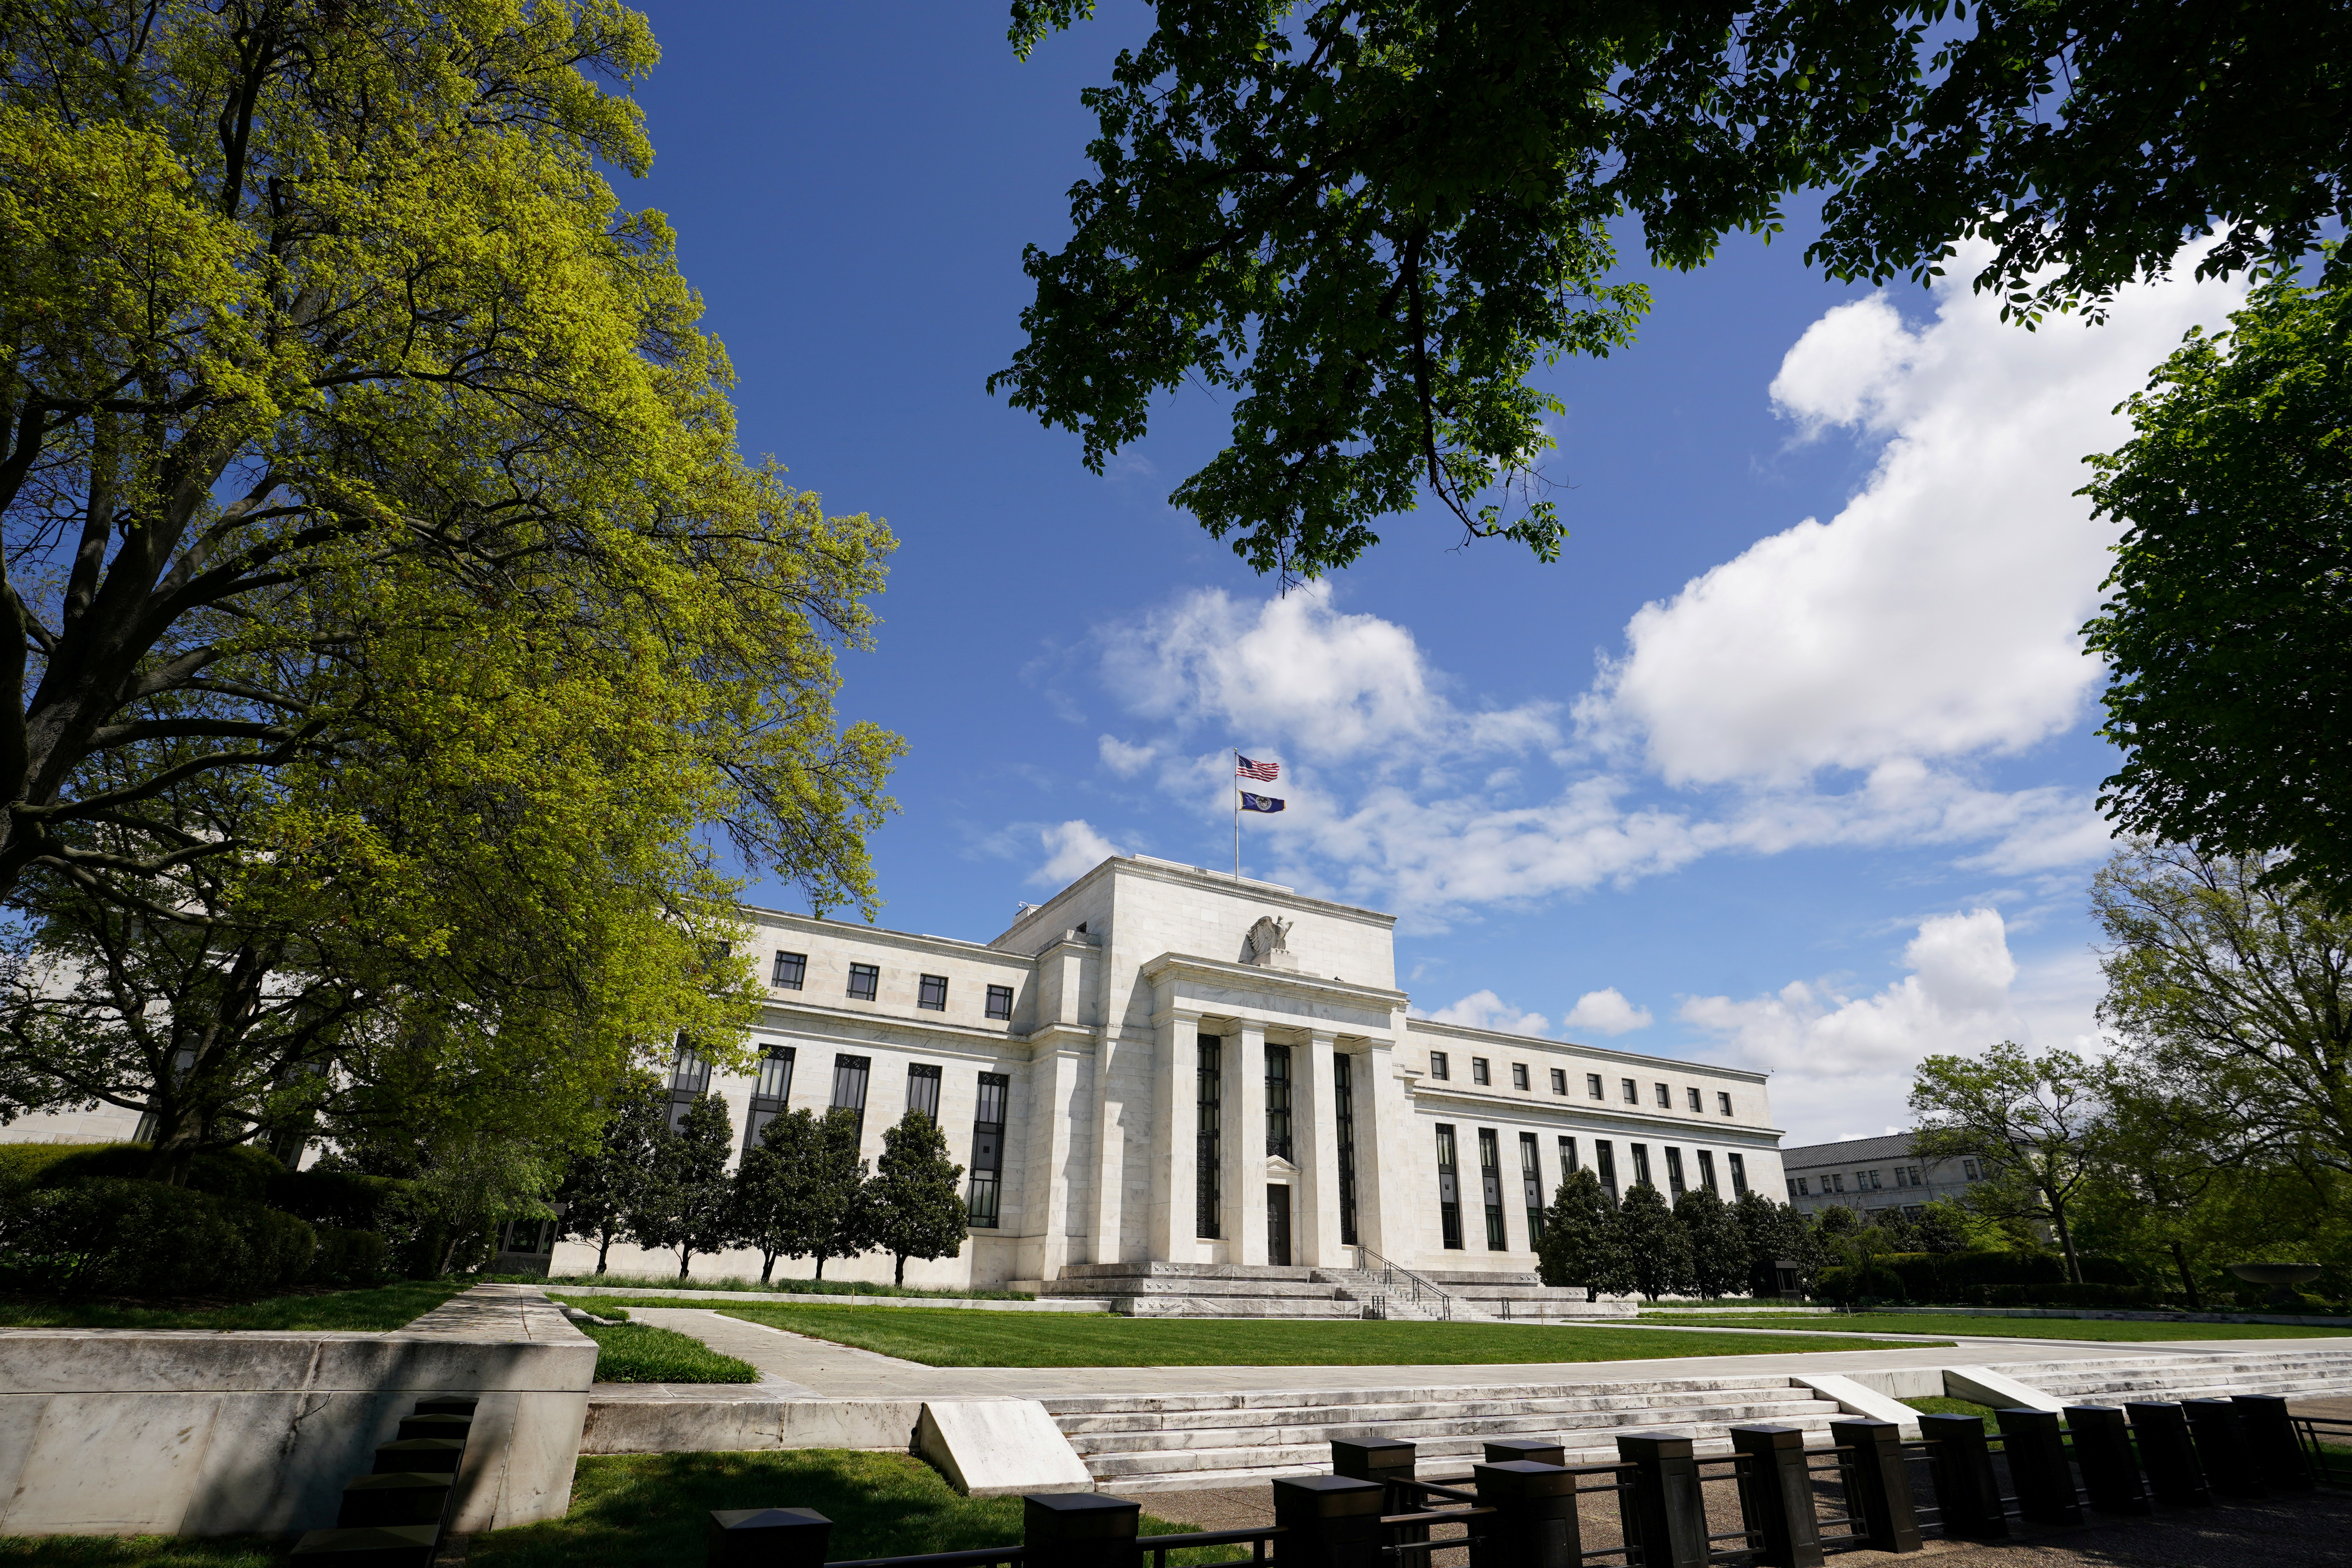 The Federal Reserve building is set against a blue sky in Washington, U.S., May 1, 2020. REUTERS/Kevin Lamarque/File Photo